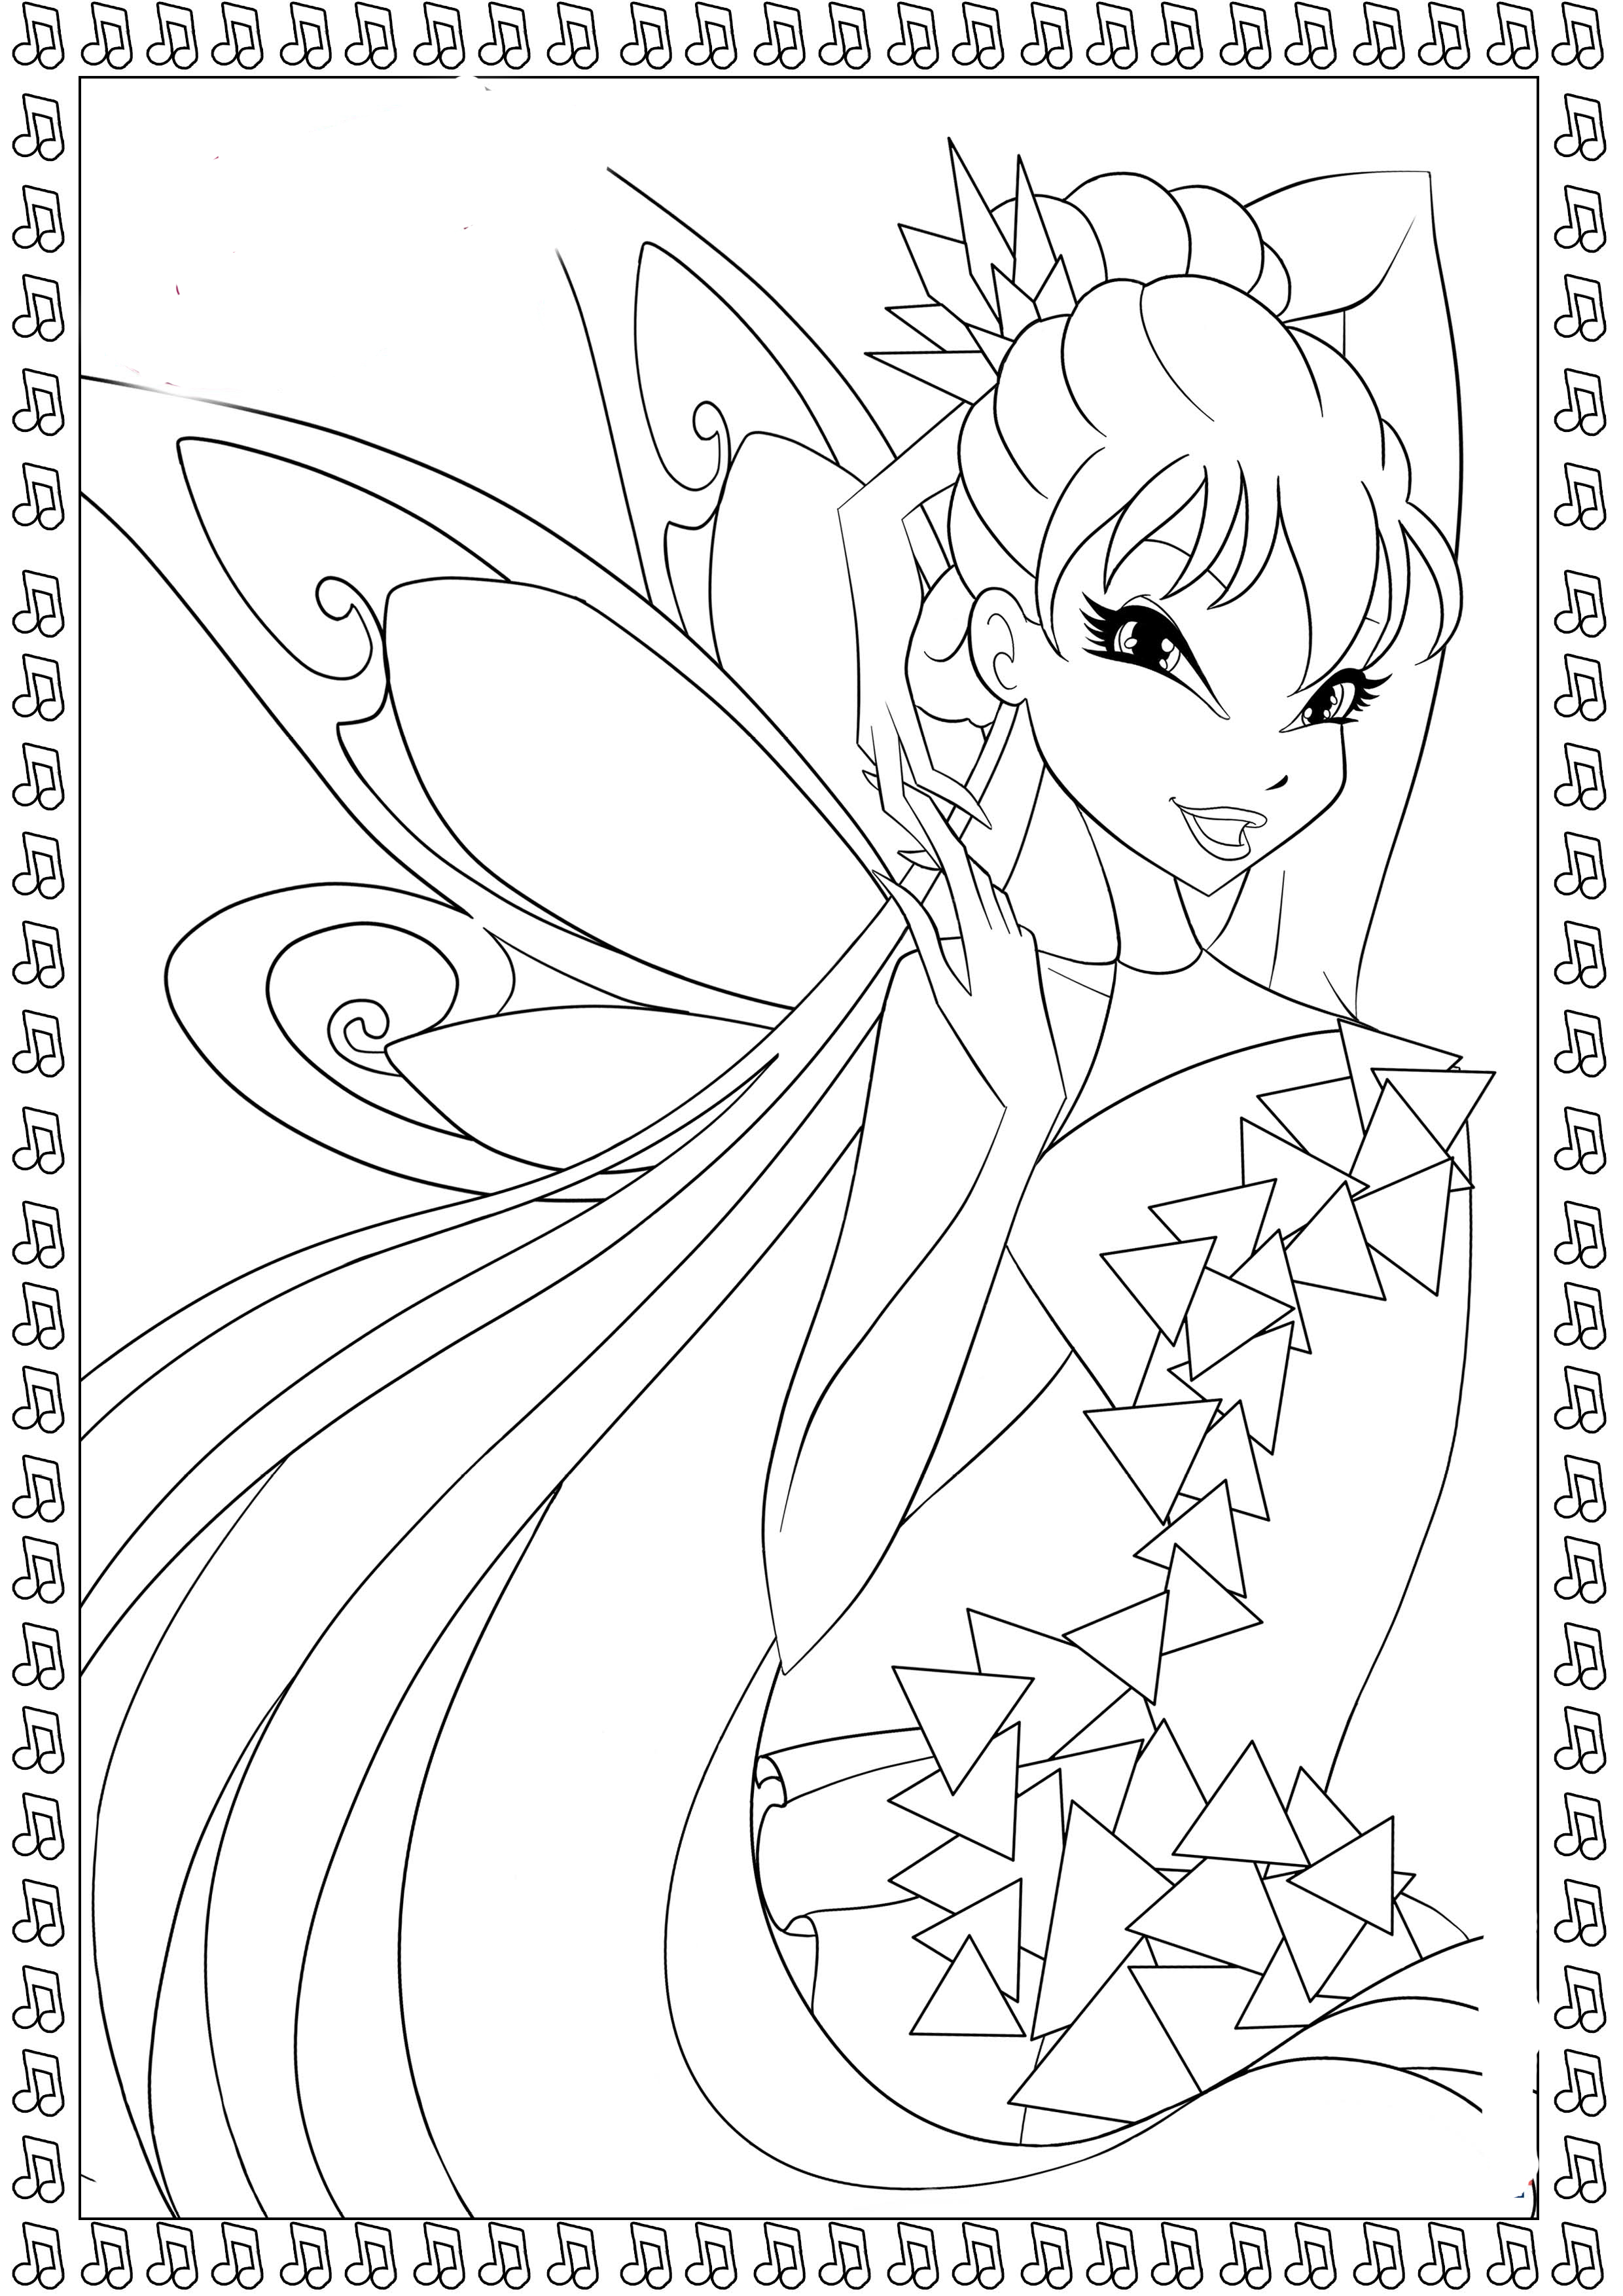 winx coloring pages winx tynix coloring pages to download and print for free coloring pages winx